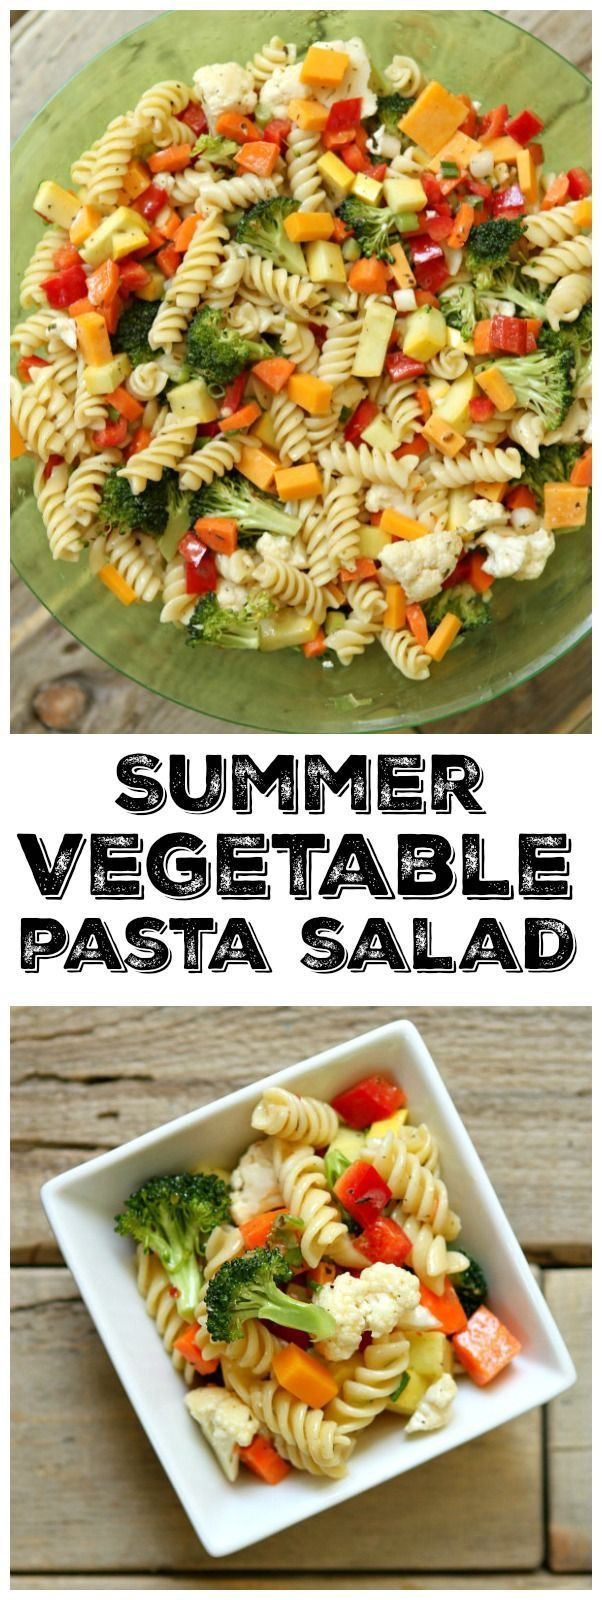 Easy Summer Vegetable Pasta Salad recipe: perfect for parties, BBQ's and potlucks.   A delicious pasta salad to serve at parties.